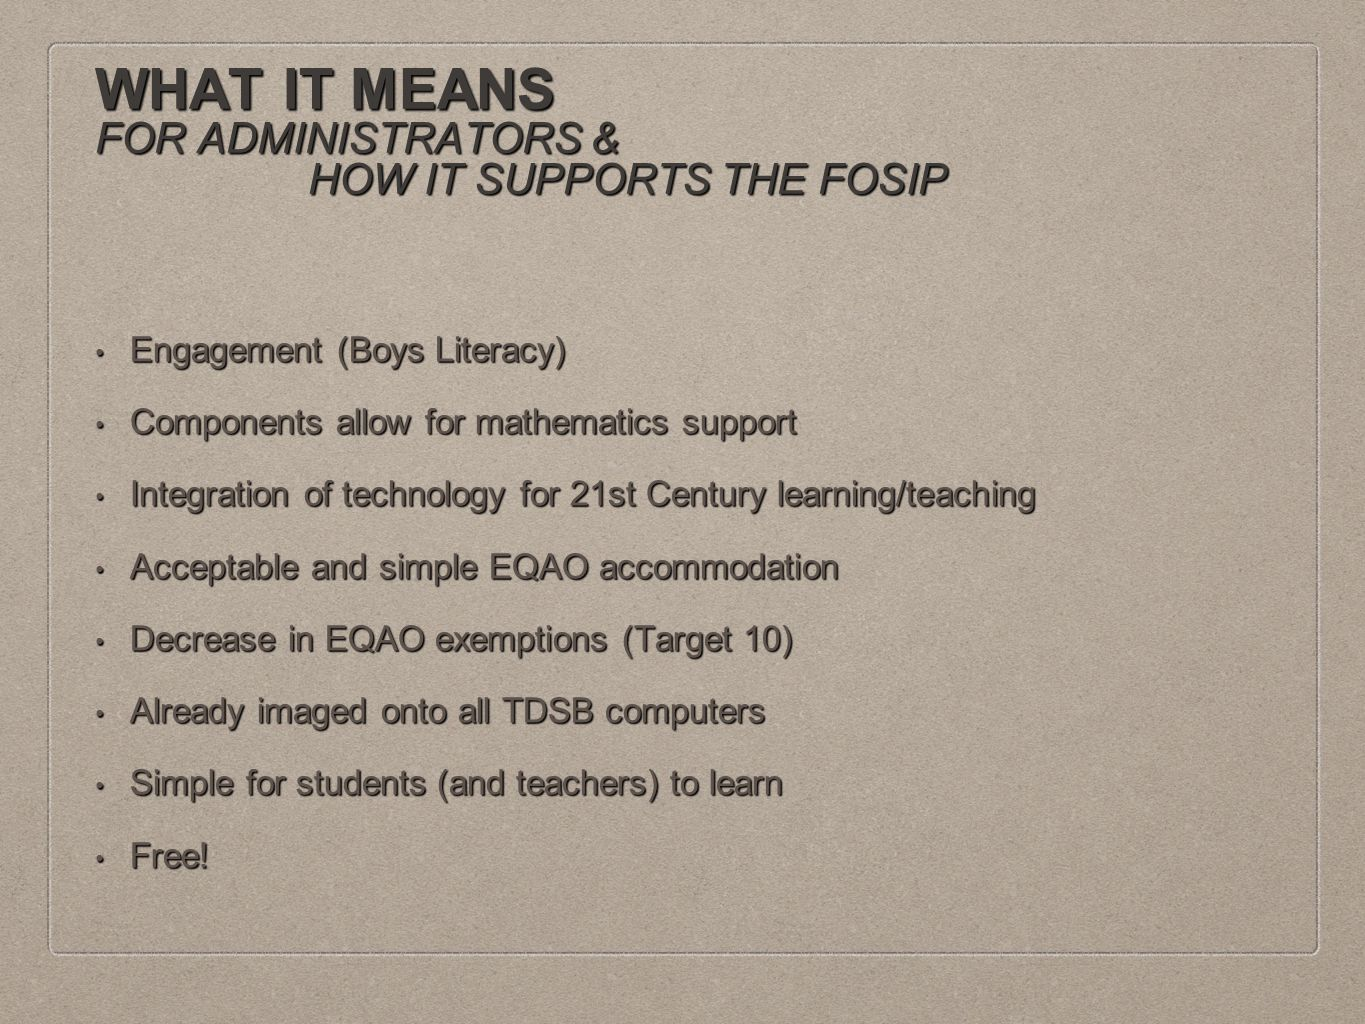 WHAT IT MEANS FOR ADMINISTRATORS & HOW IT SUPPORTS THE FOSIP Engagement (Boys Literacy) Engagement (Boys Literacy) Components allow for mathematics support Components allow for mathematics support Integration of technology for 21st Century learning/teaching Integration of technology for 21st Century learning/teaching Acceptable and simple EQAO accommodation Acceptable and simple EQAO accommodation Decrease in EQAO exemptions (Target 10) Decrease in EQAO exemptions (Target 10) Already imaged onto all TDSB computers Already imaged onto all TDSB computers Simple for students (and teachers) to learn Simple for students (and teachers) to learn Free.